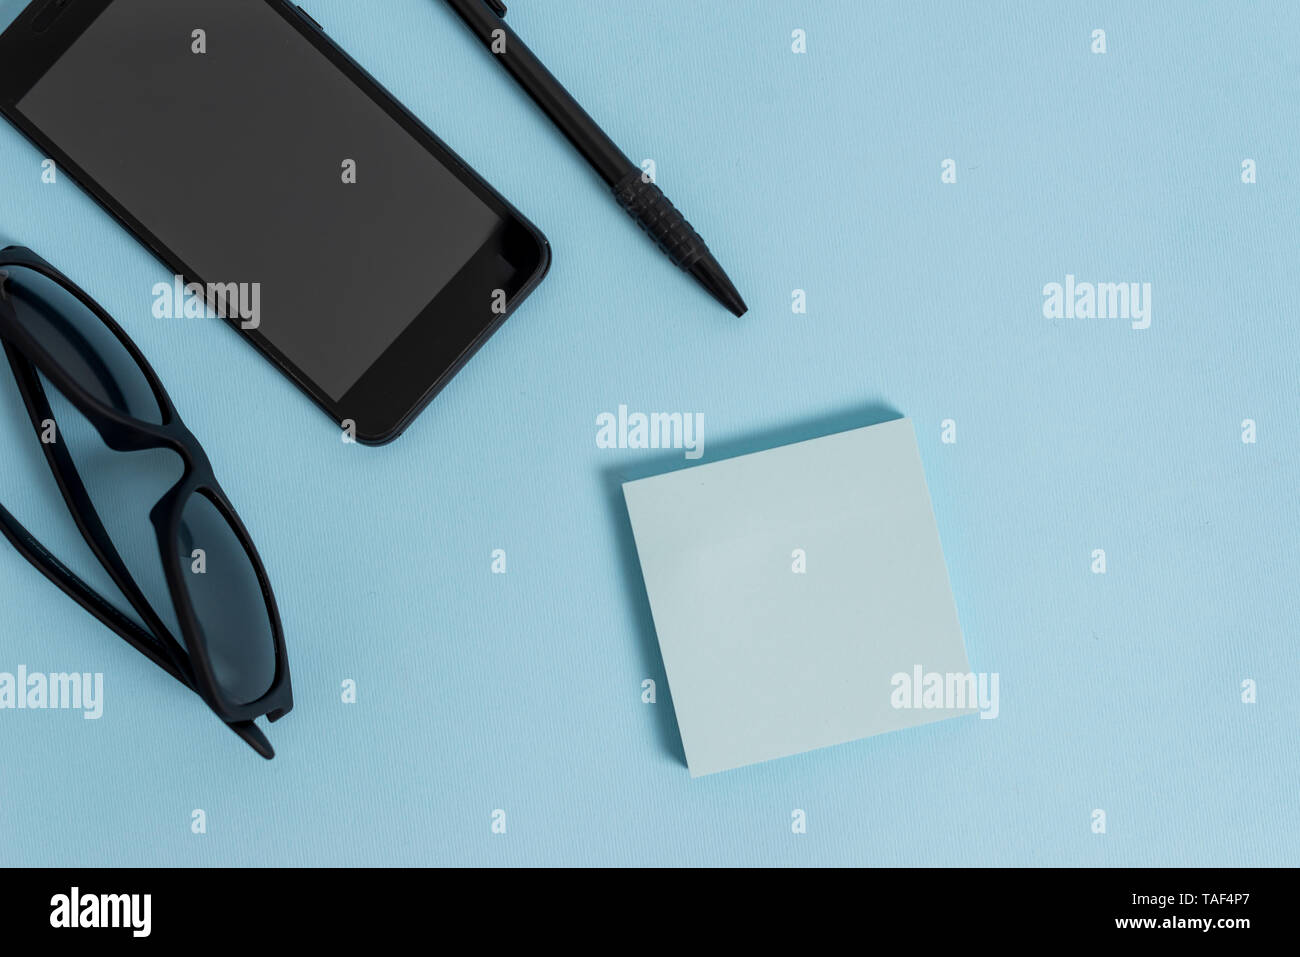 Eyeglasses colored sticky note smartphone cell pen cool pastel background - Stock Image